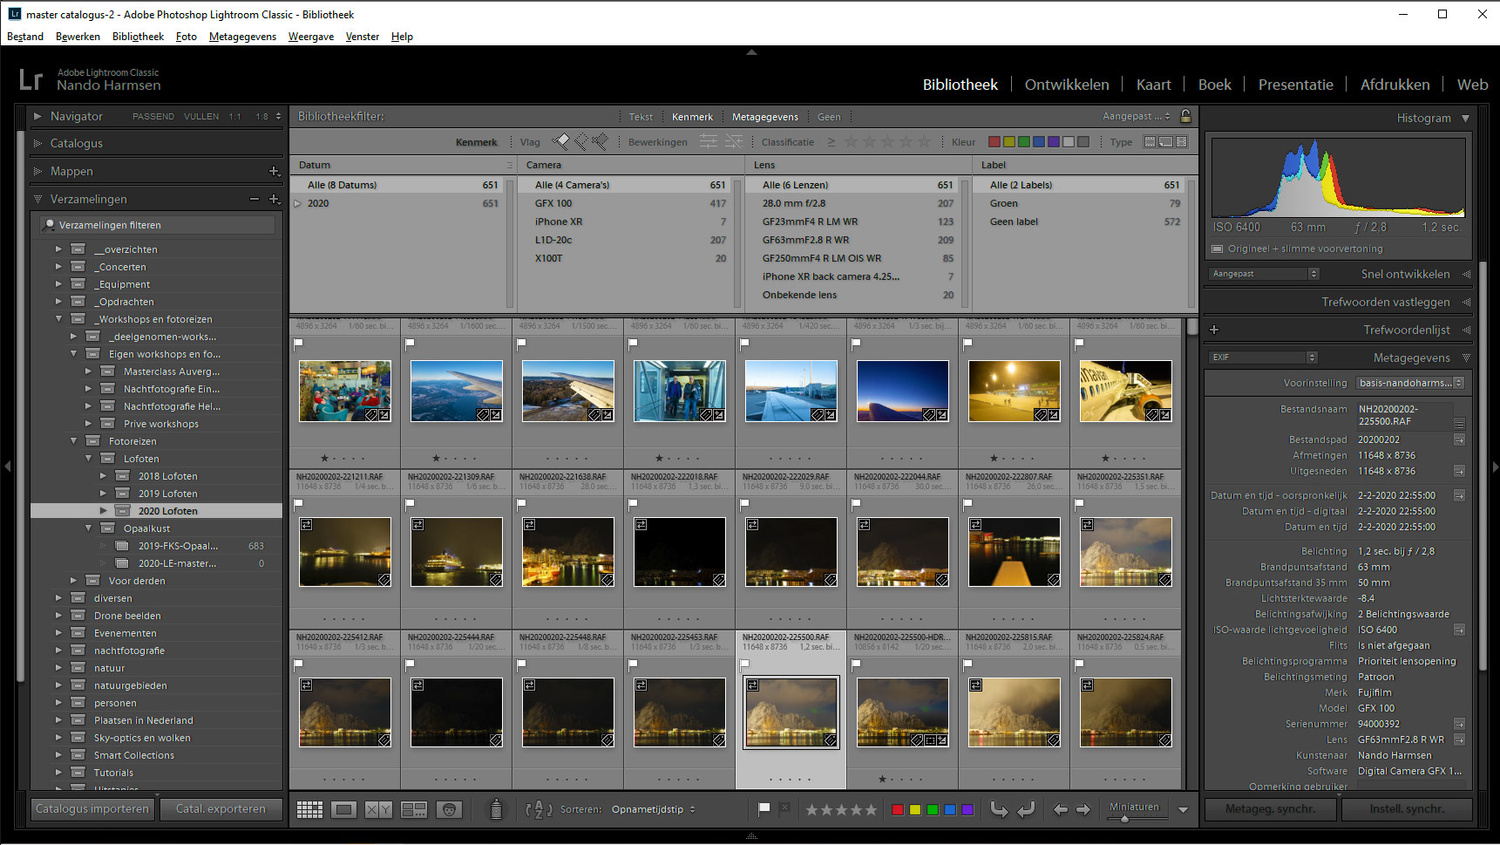 Searching a library of images is very easy in Lightroom. Also ordering images in different collections is possible. The system is much more extensive and flexible compared to Luminar.